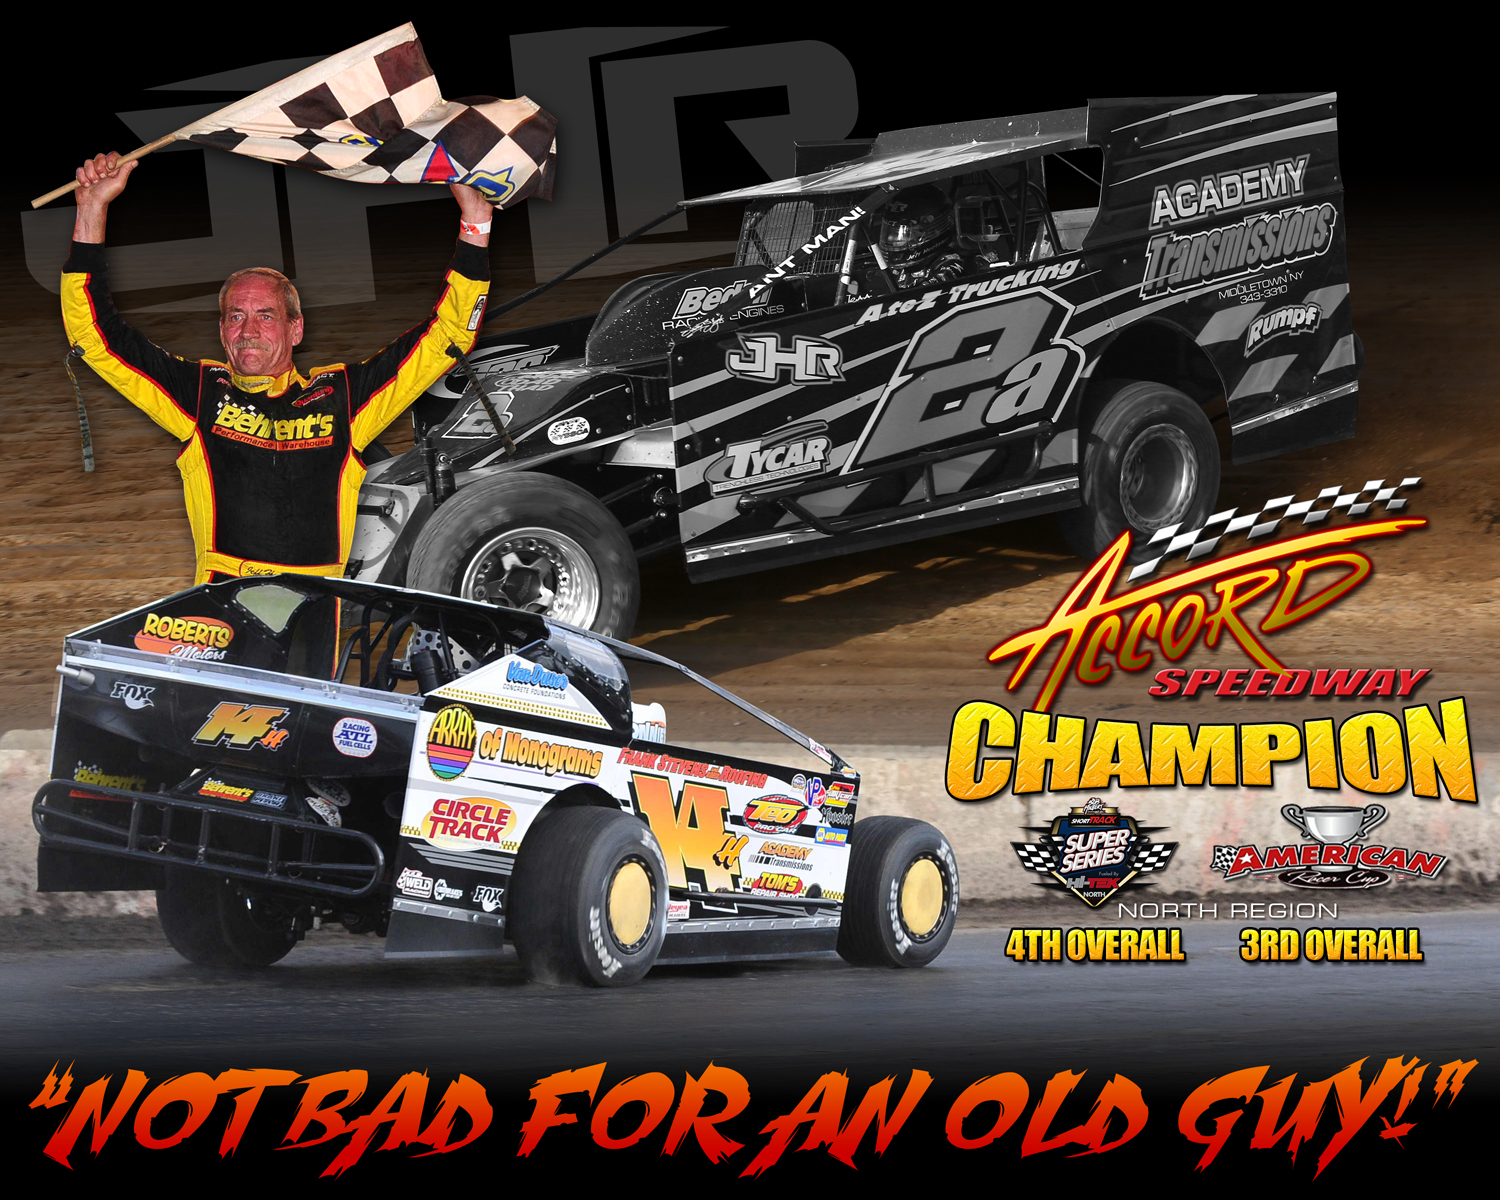 The Jeffer Jeff Heotzler completes a successful 2015 season that included 4 wins and his 5th Accord Speedway Track Championship!